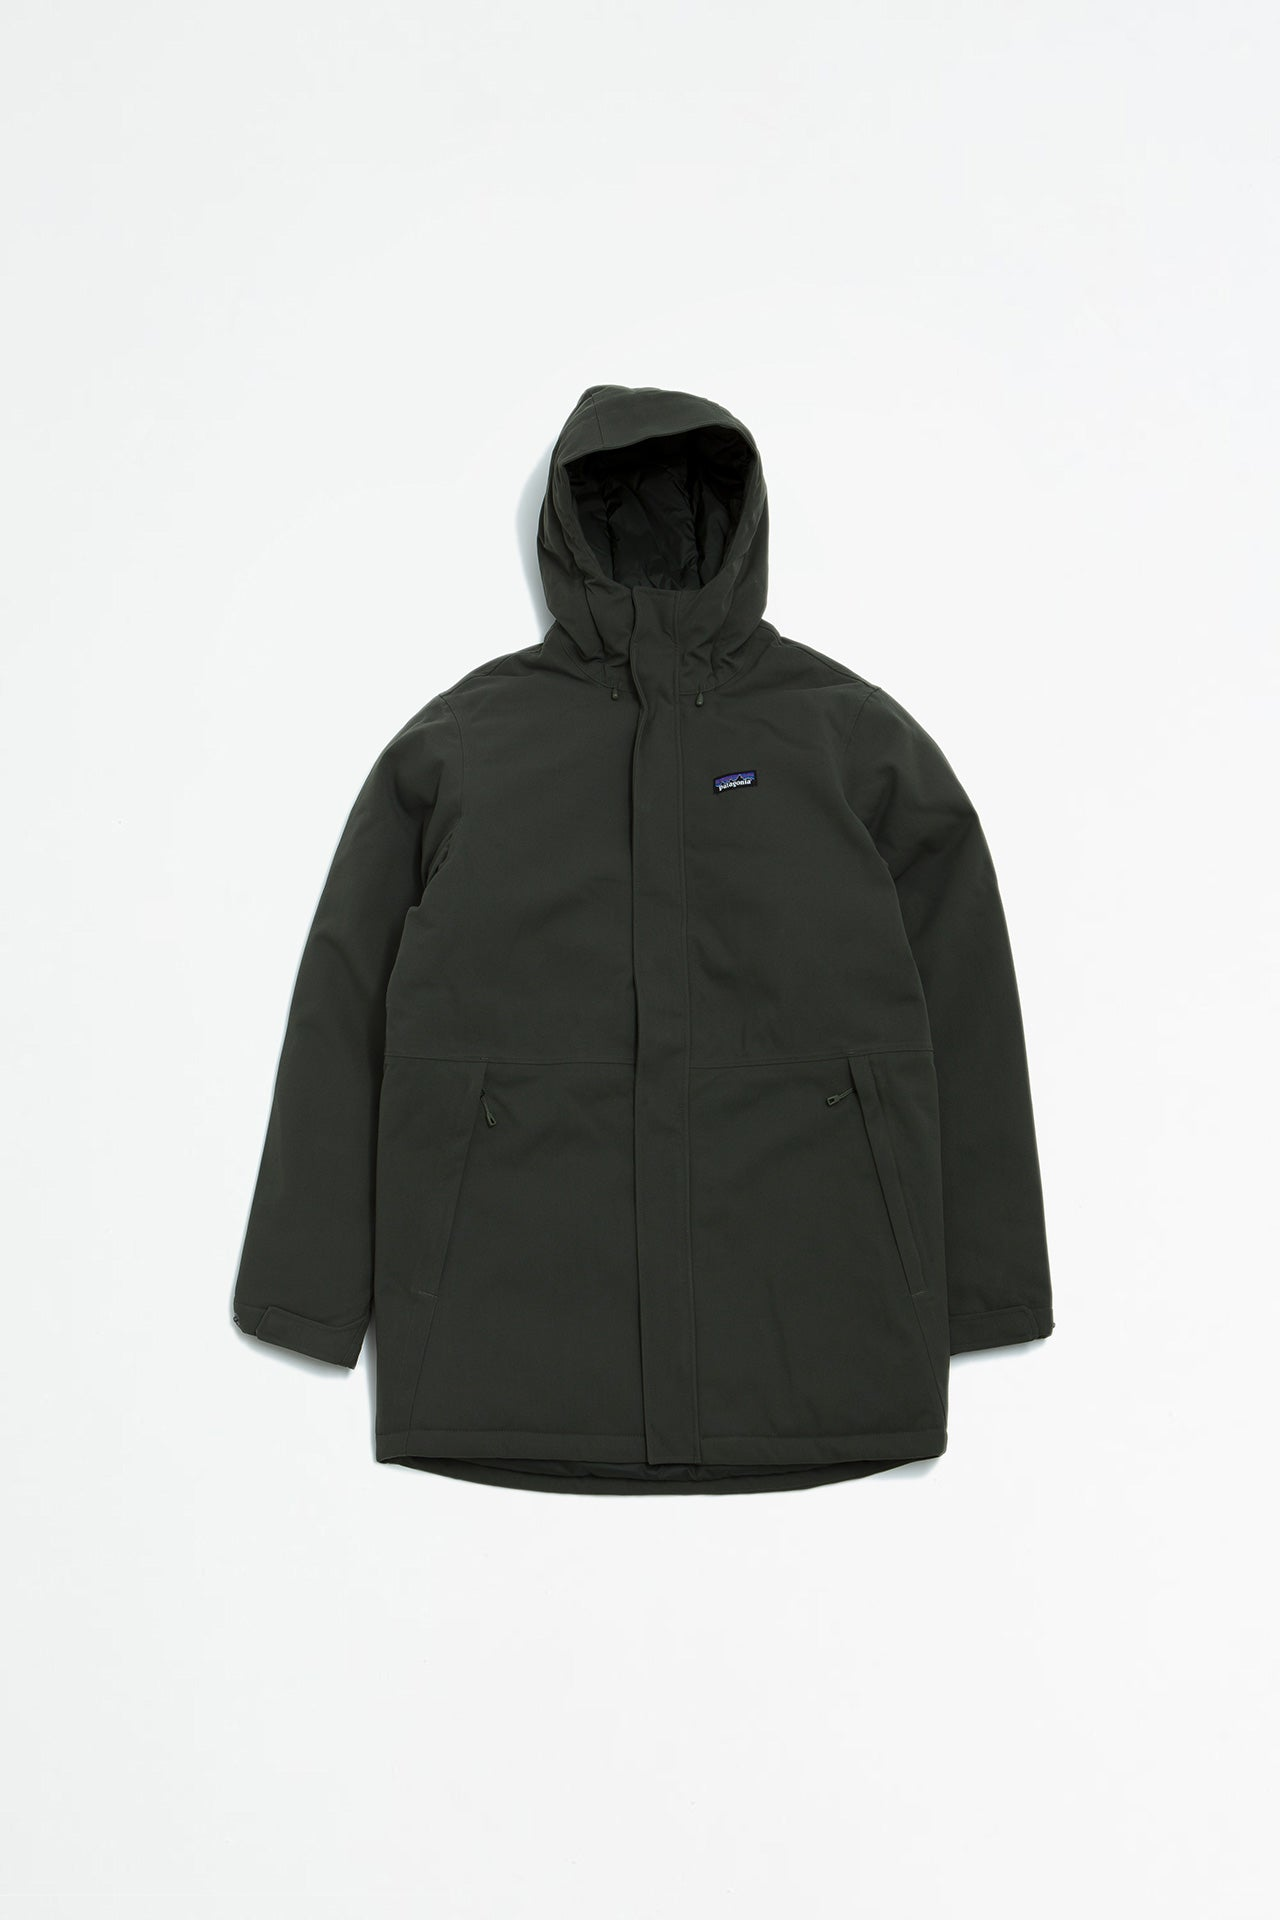 Lone Mountain parka alder green